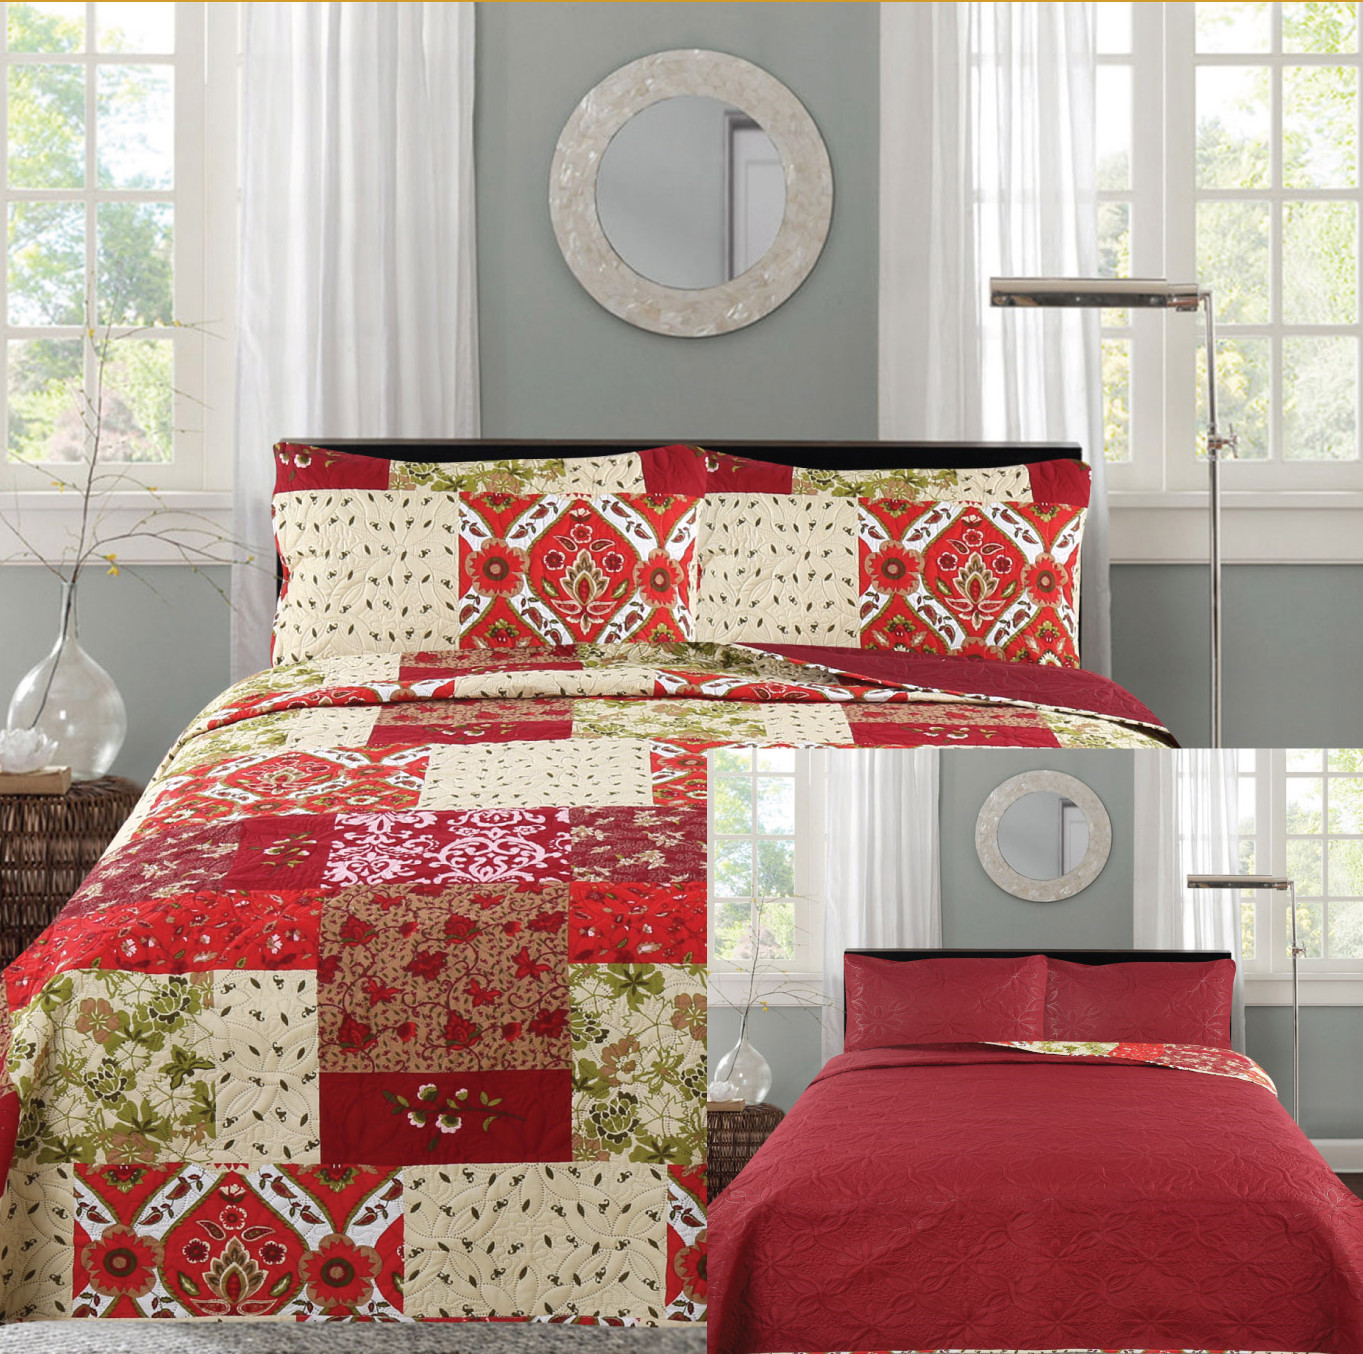 All American Collection New 3pc Printed Reversible Modern Floral Bedspread Coverlet... by American Linen & Rugs